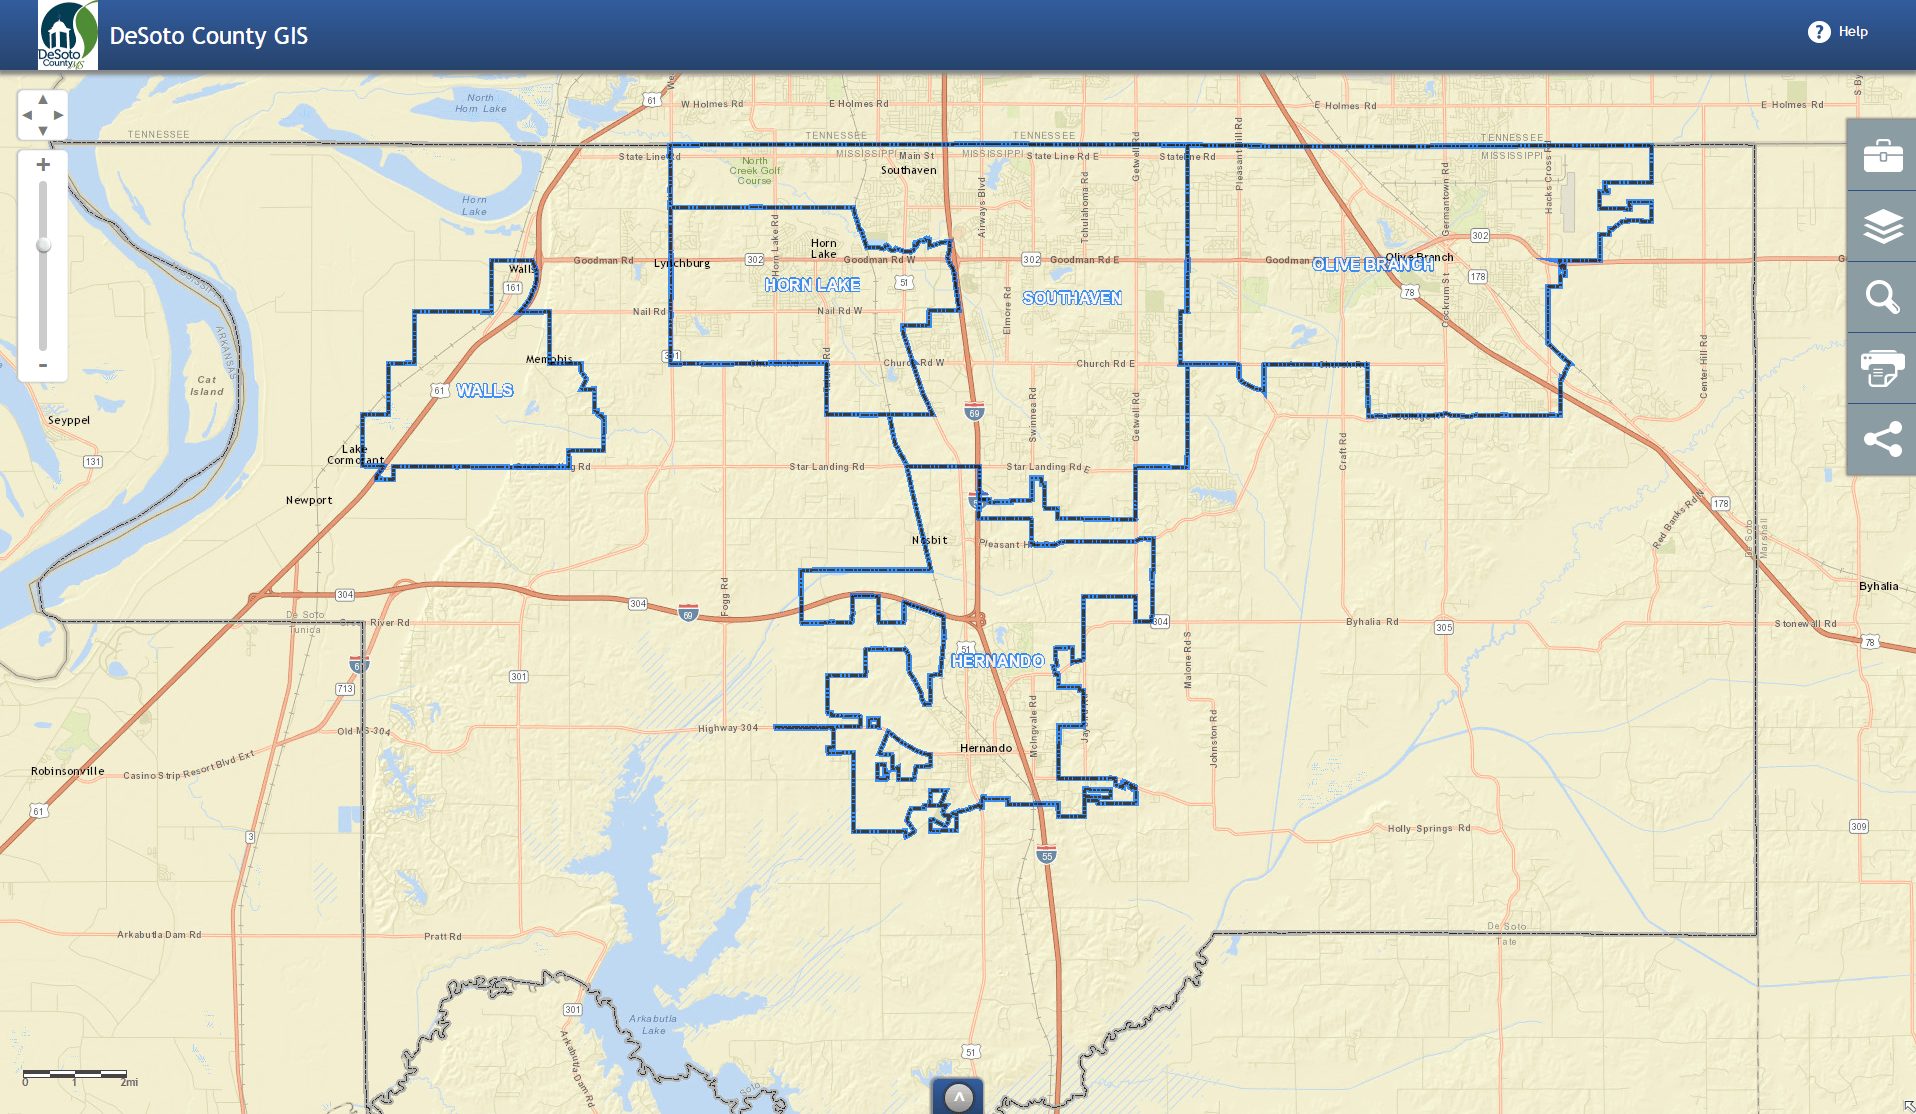 Desoto County GIS map